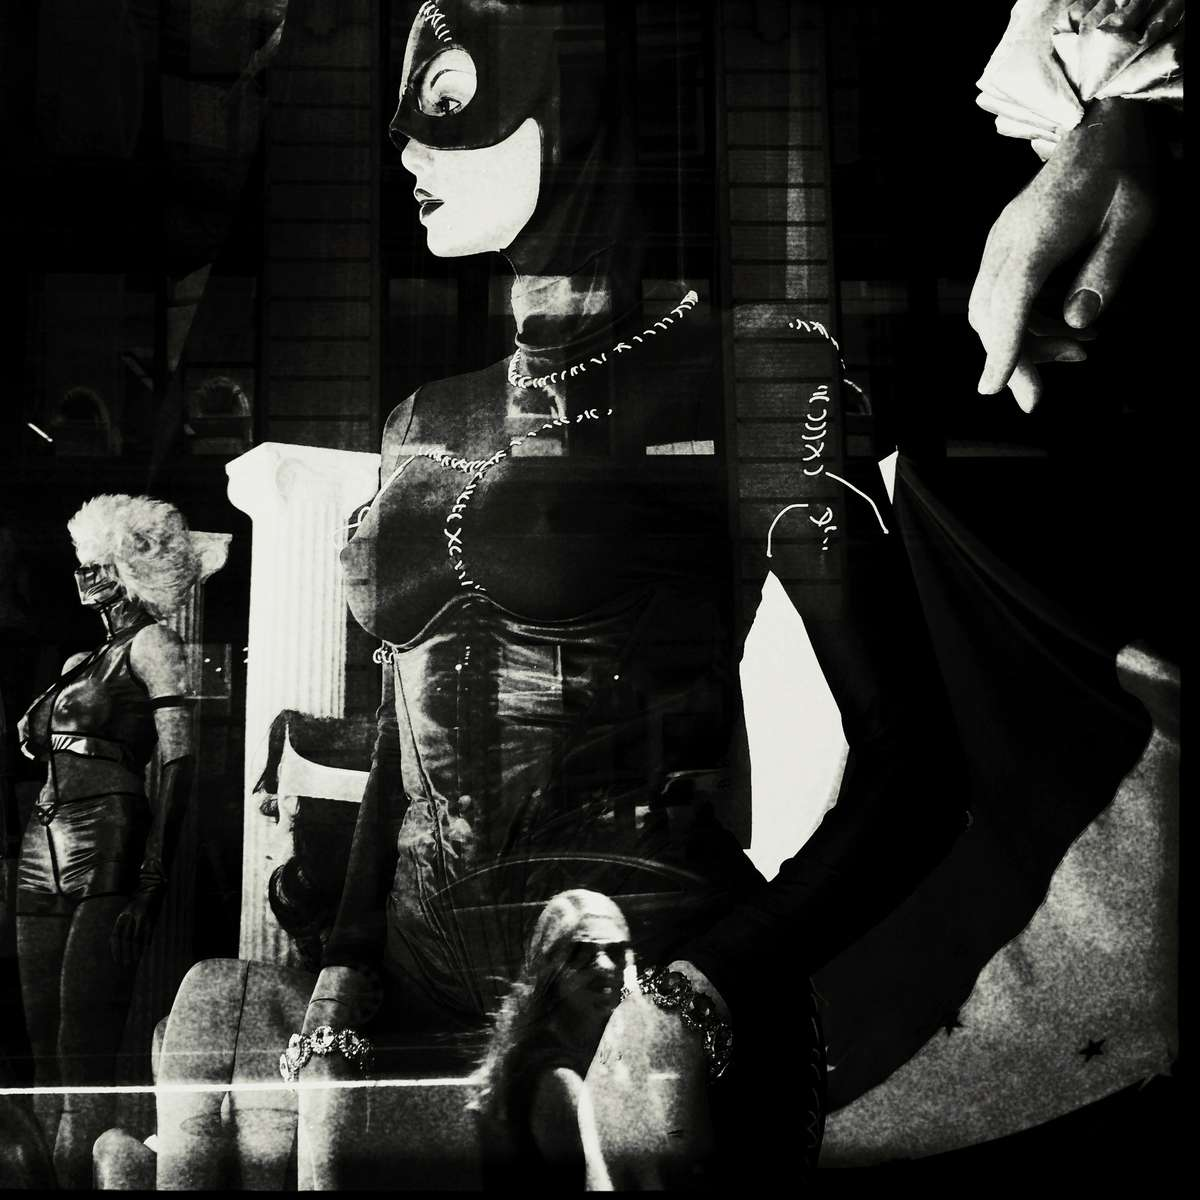 A passerby woman is overlapped with a window display of mannequins, due to New York's summer reflection. #newyork #refulection #mannequin #window_display